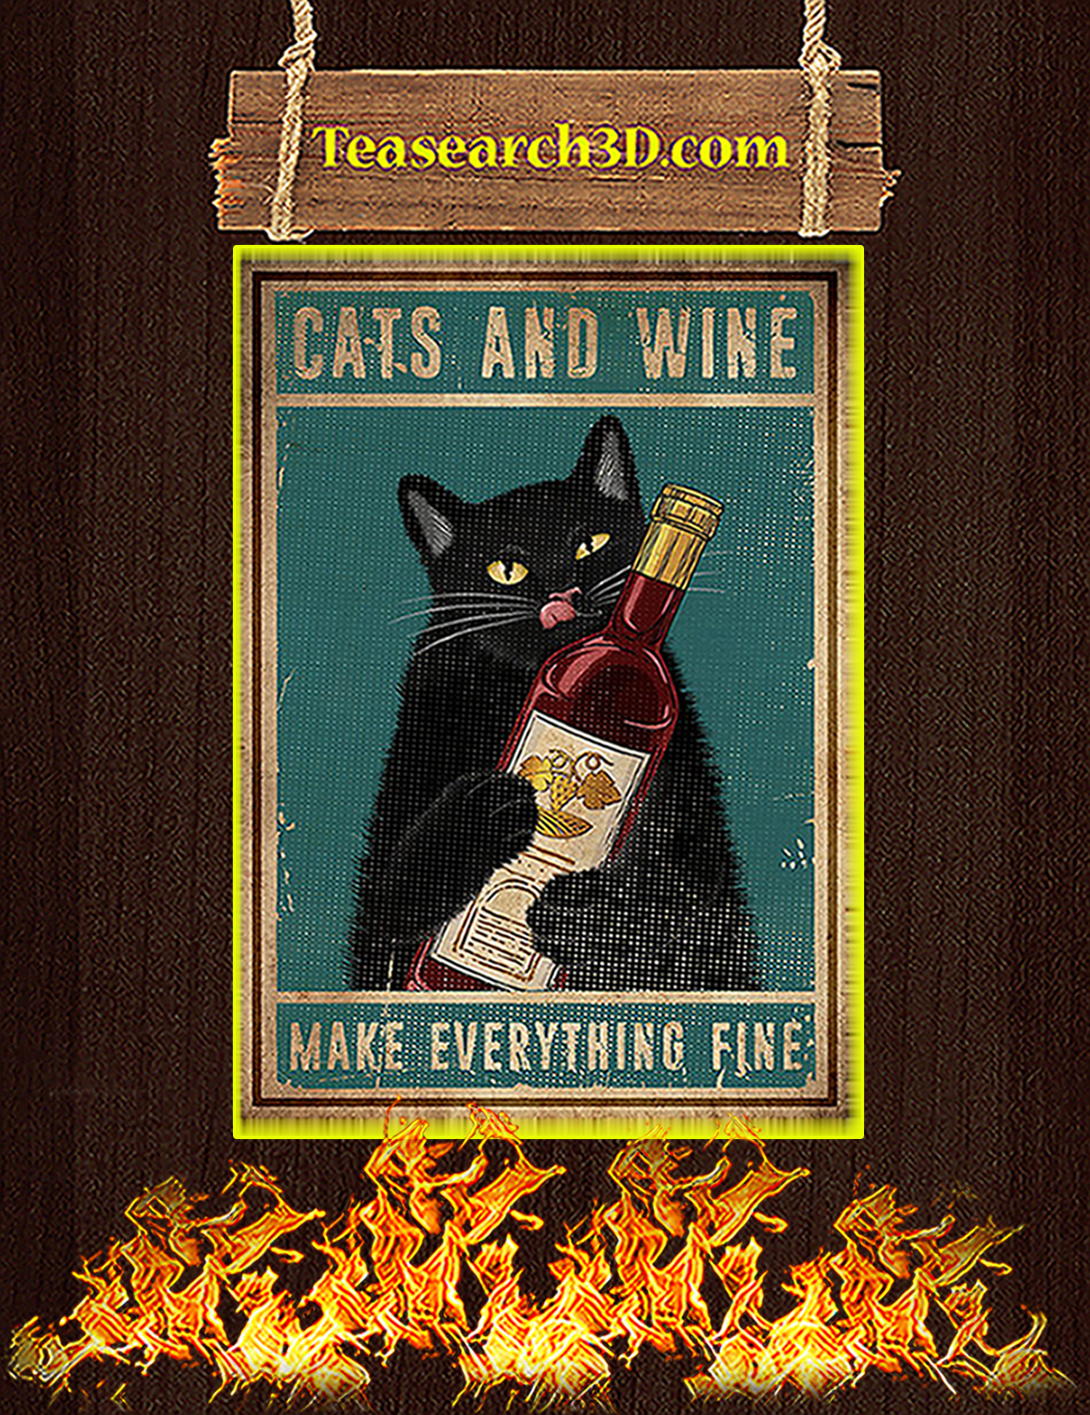 Cats and wine make everything fine poster A2